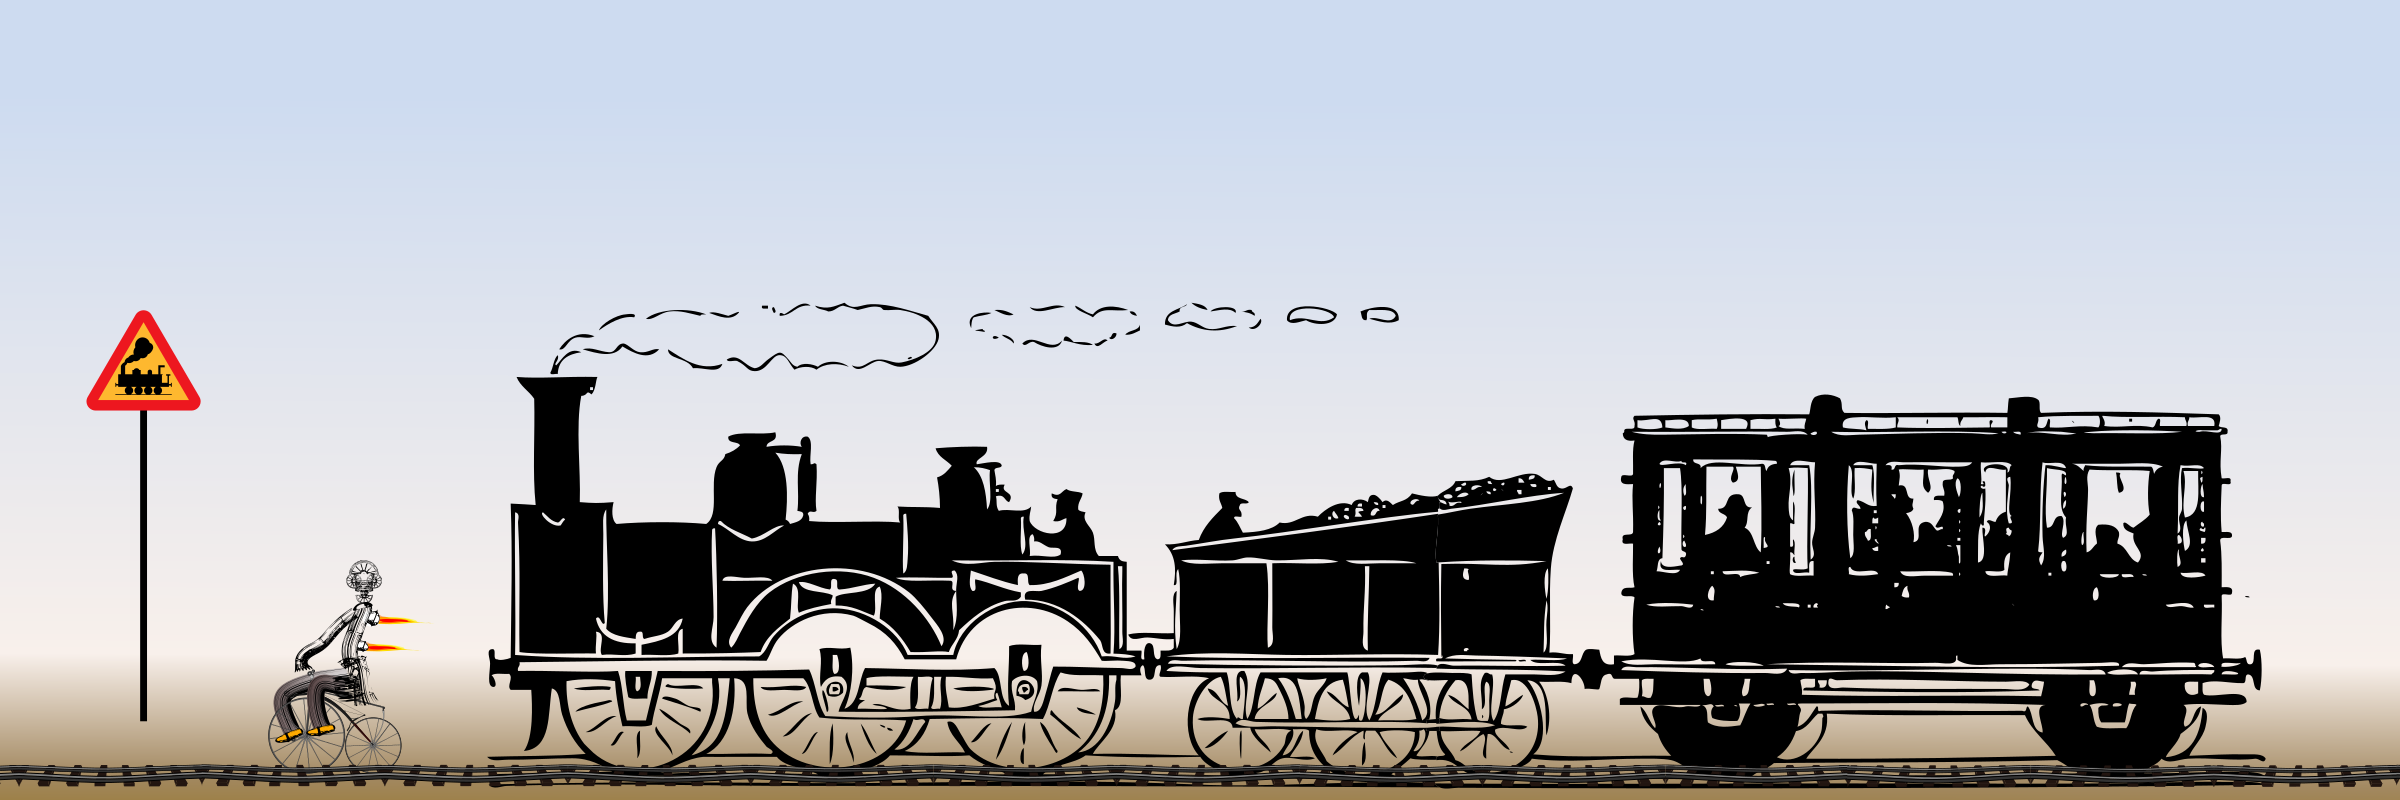 Locomotive clipart 19th century Vehicle Train and and Vehicle